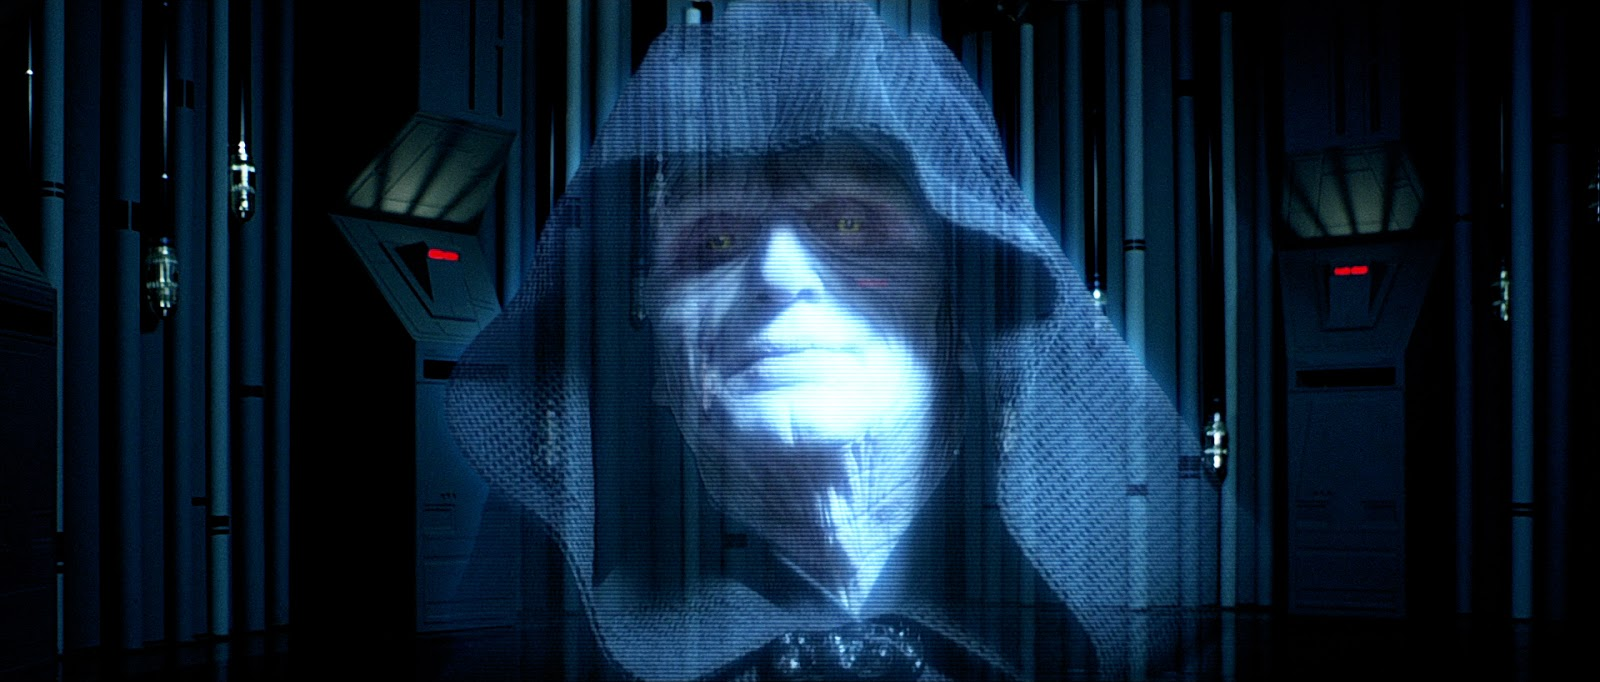 Emperor Palpatines Best Quotes From Star Wars In A Far Away Galaxy